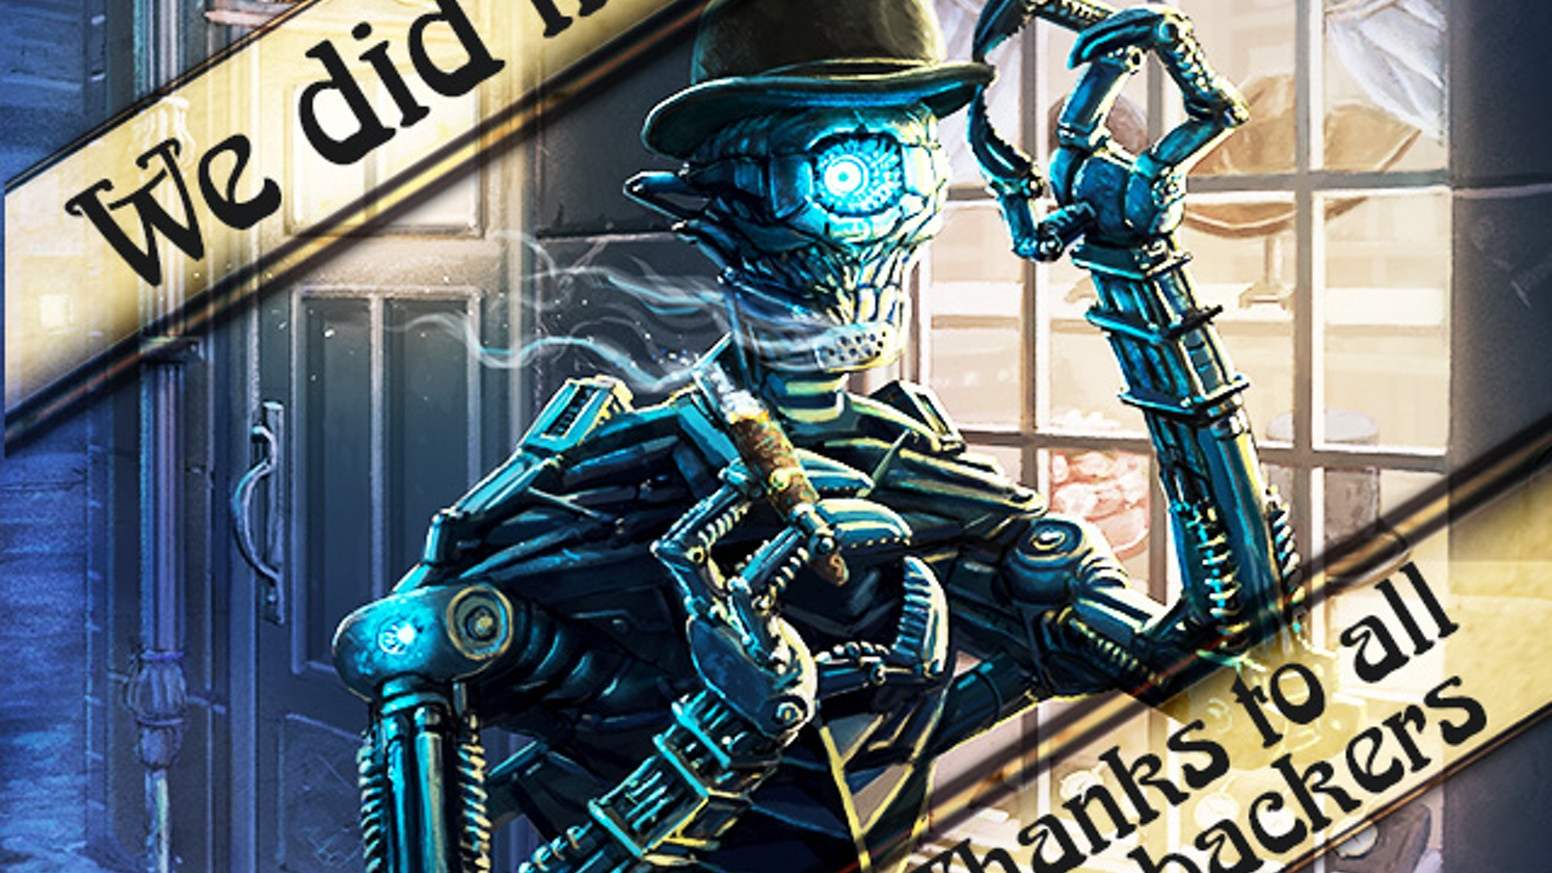 Lead a steampunk expedition to explore fantastic places and face otherworldly horrors in a deckbuilding strategy game for 1-5 players.